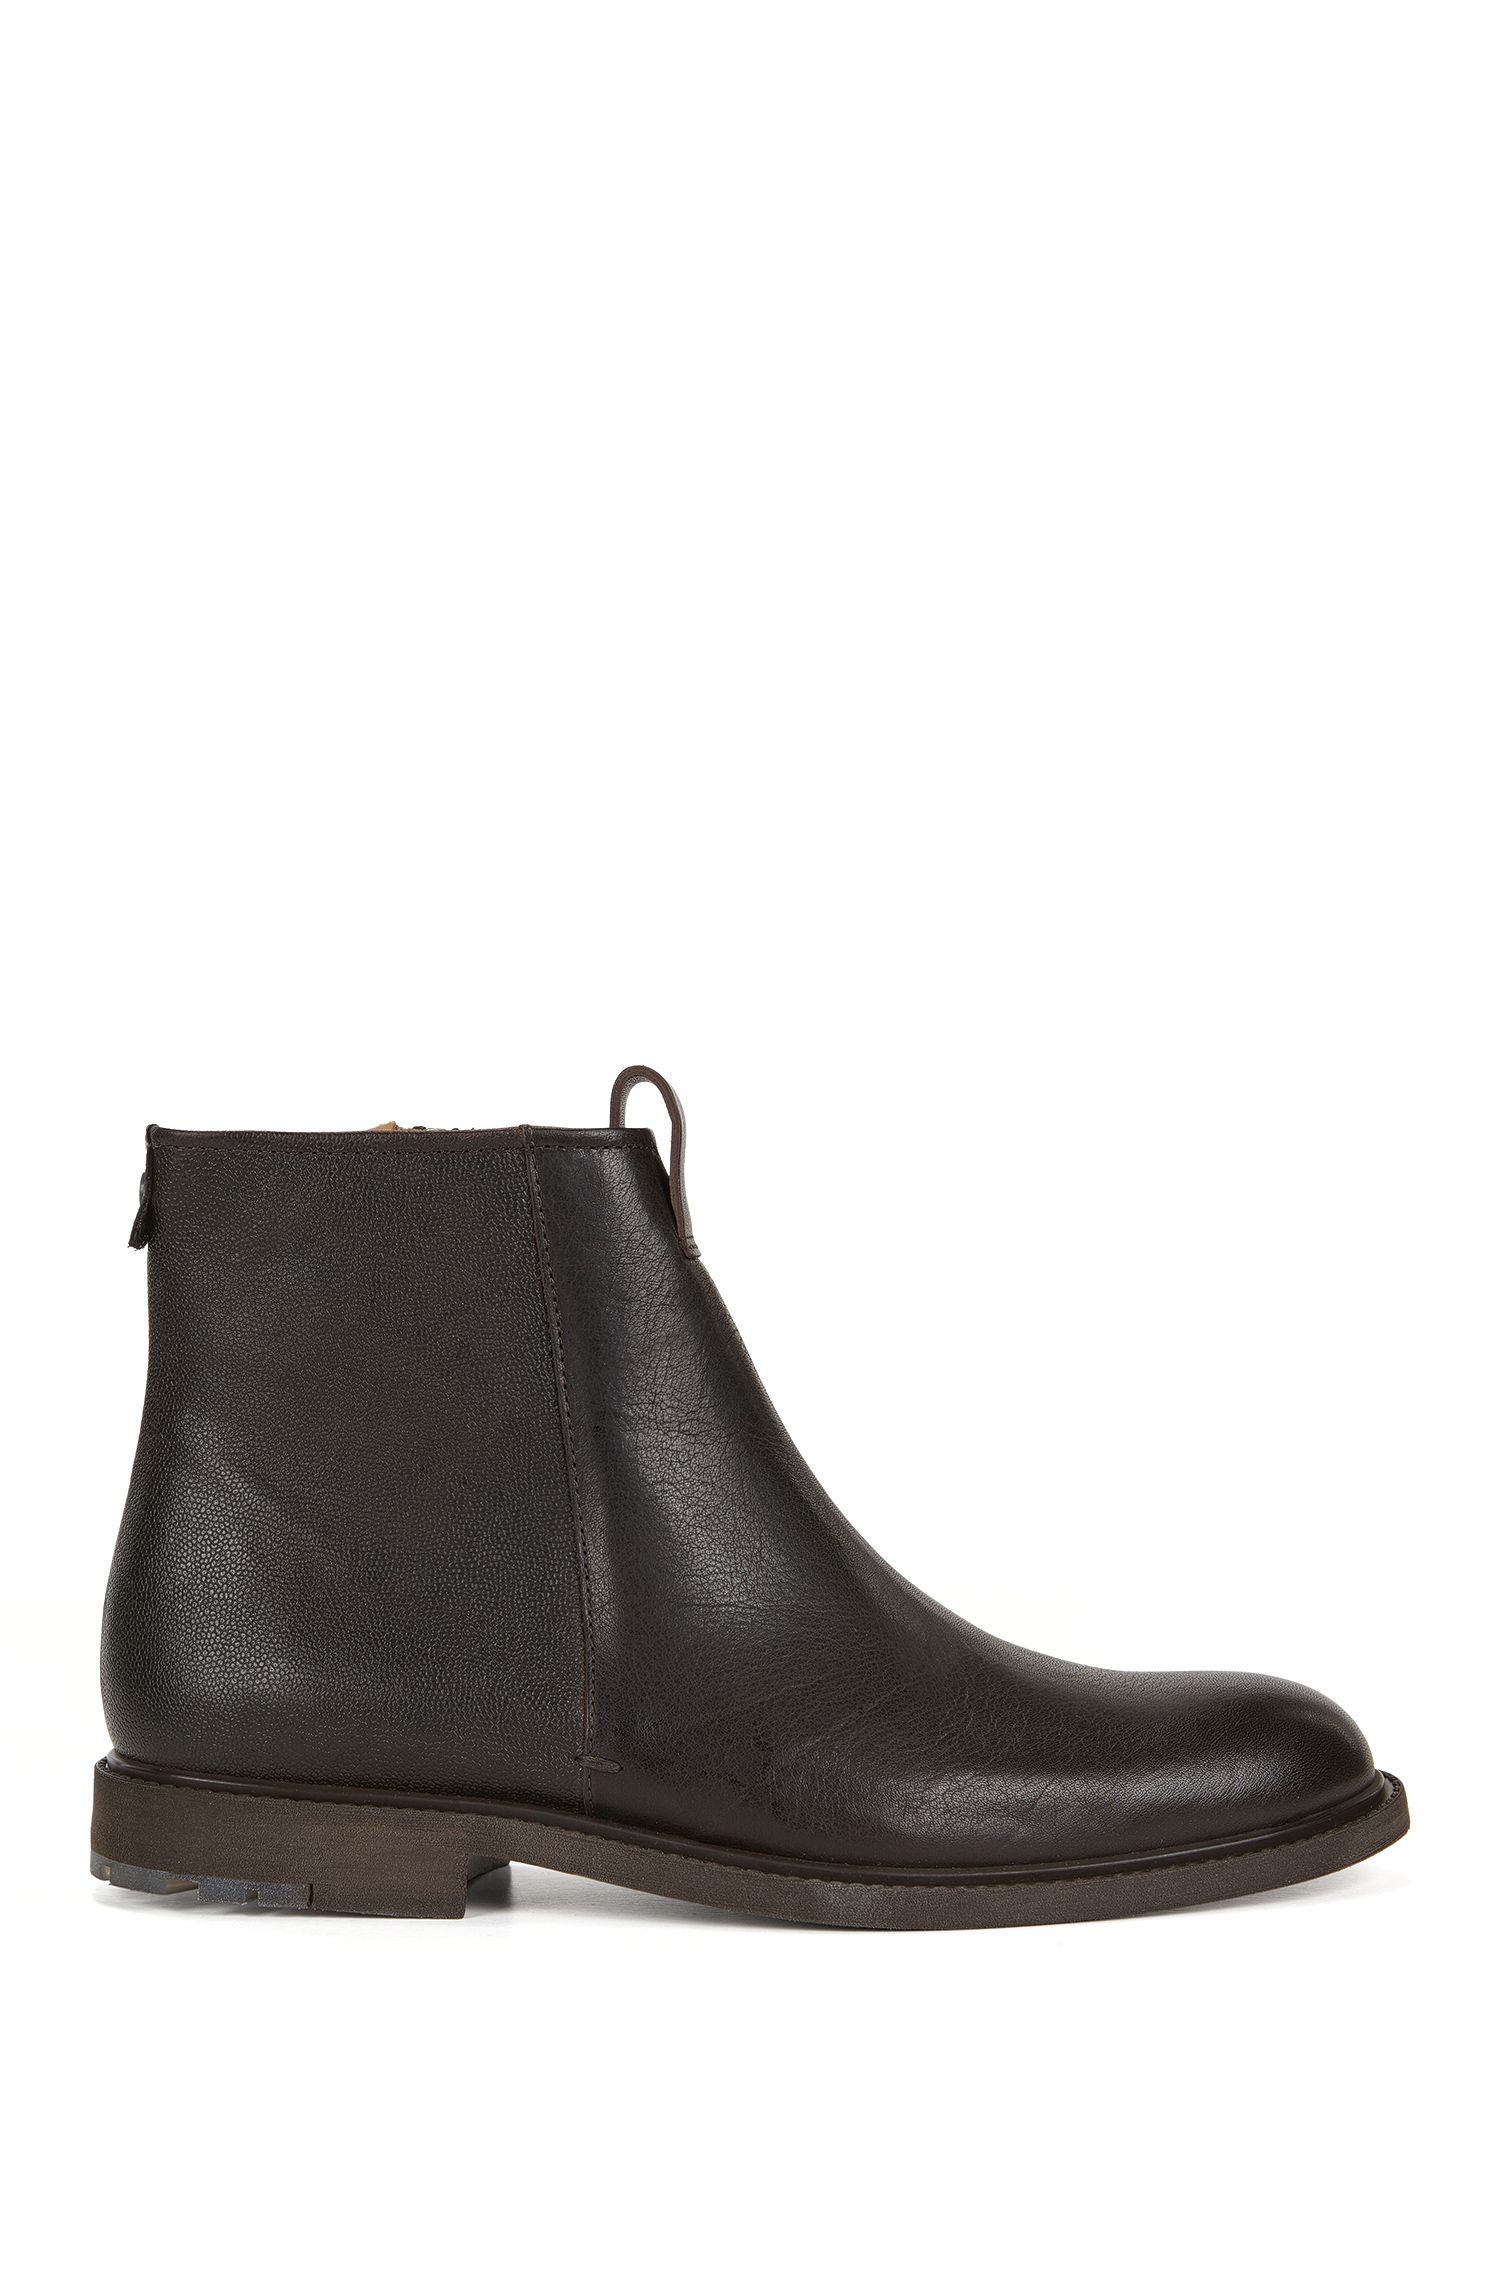 Zip-up boots in mixed leathers